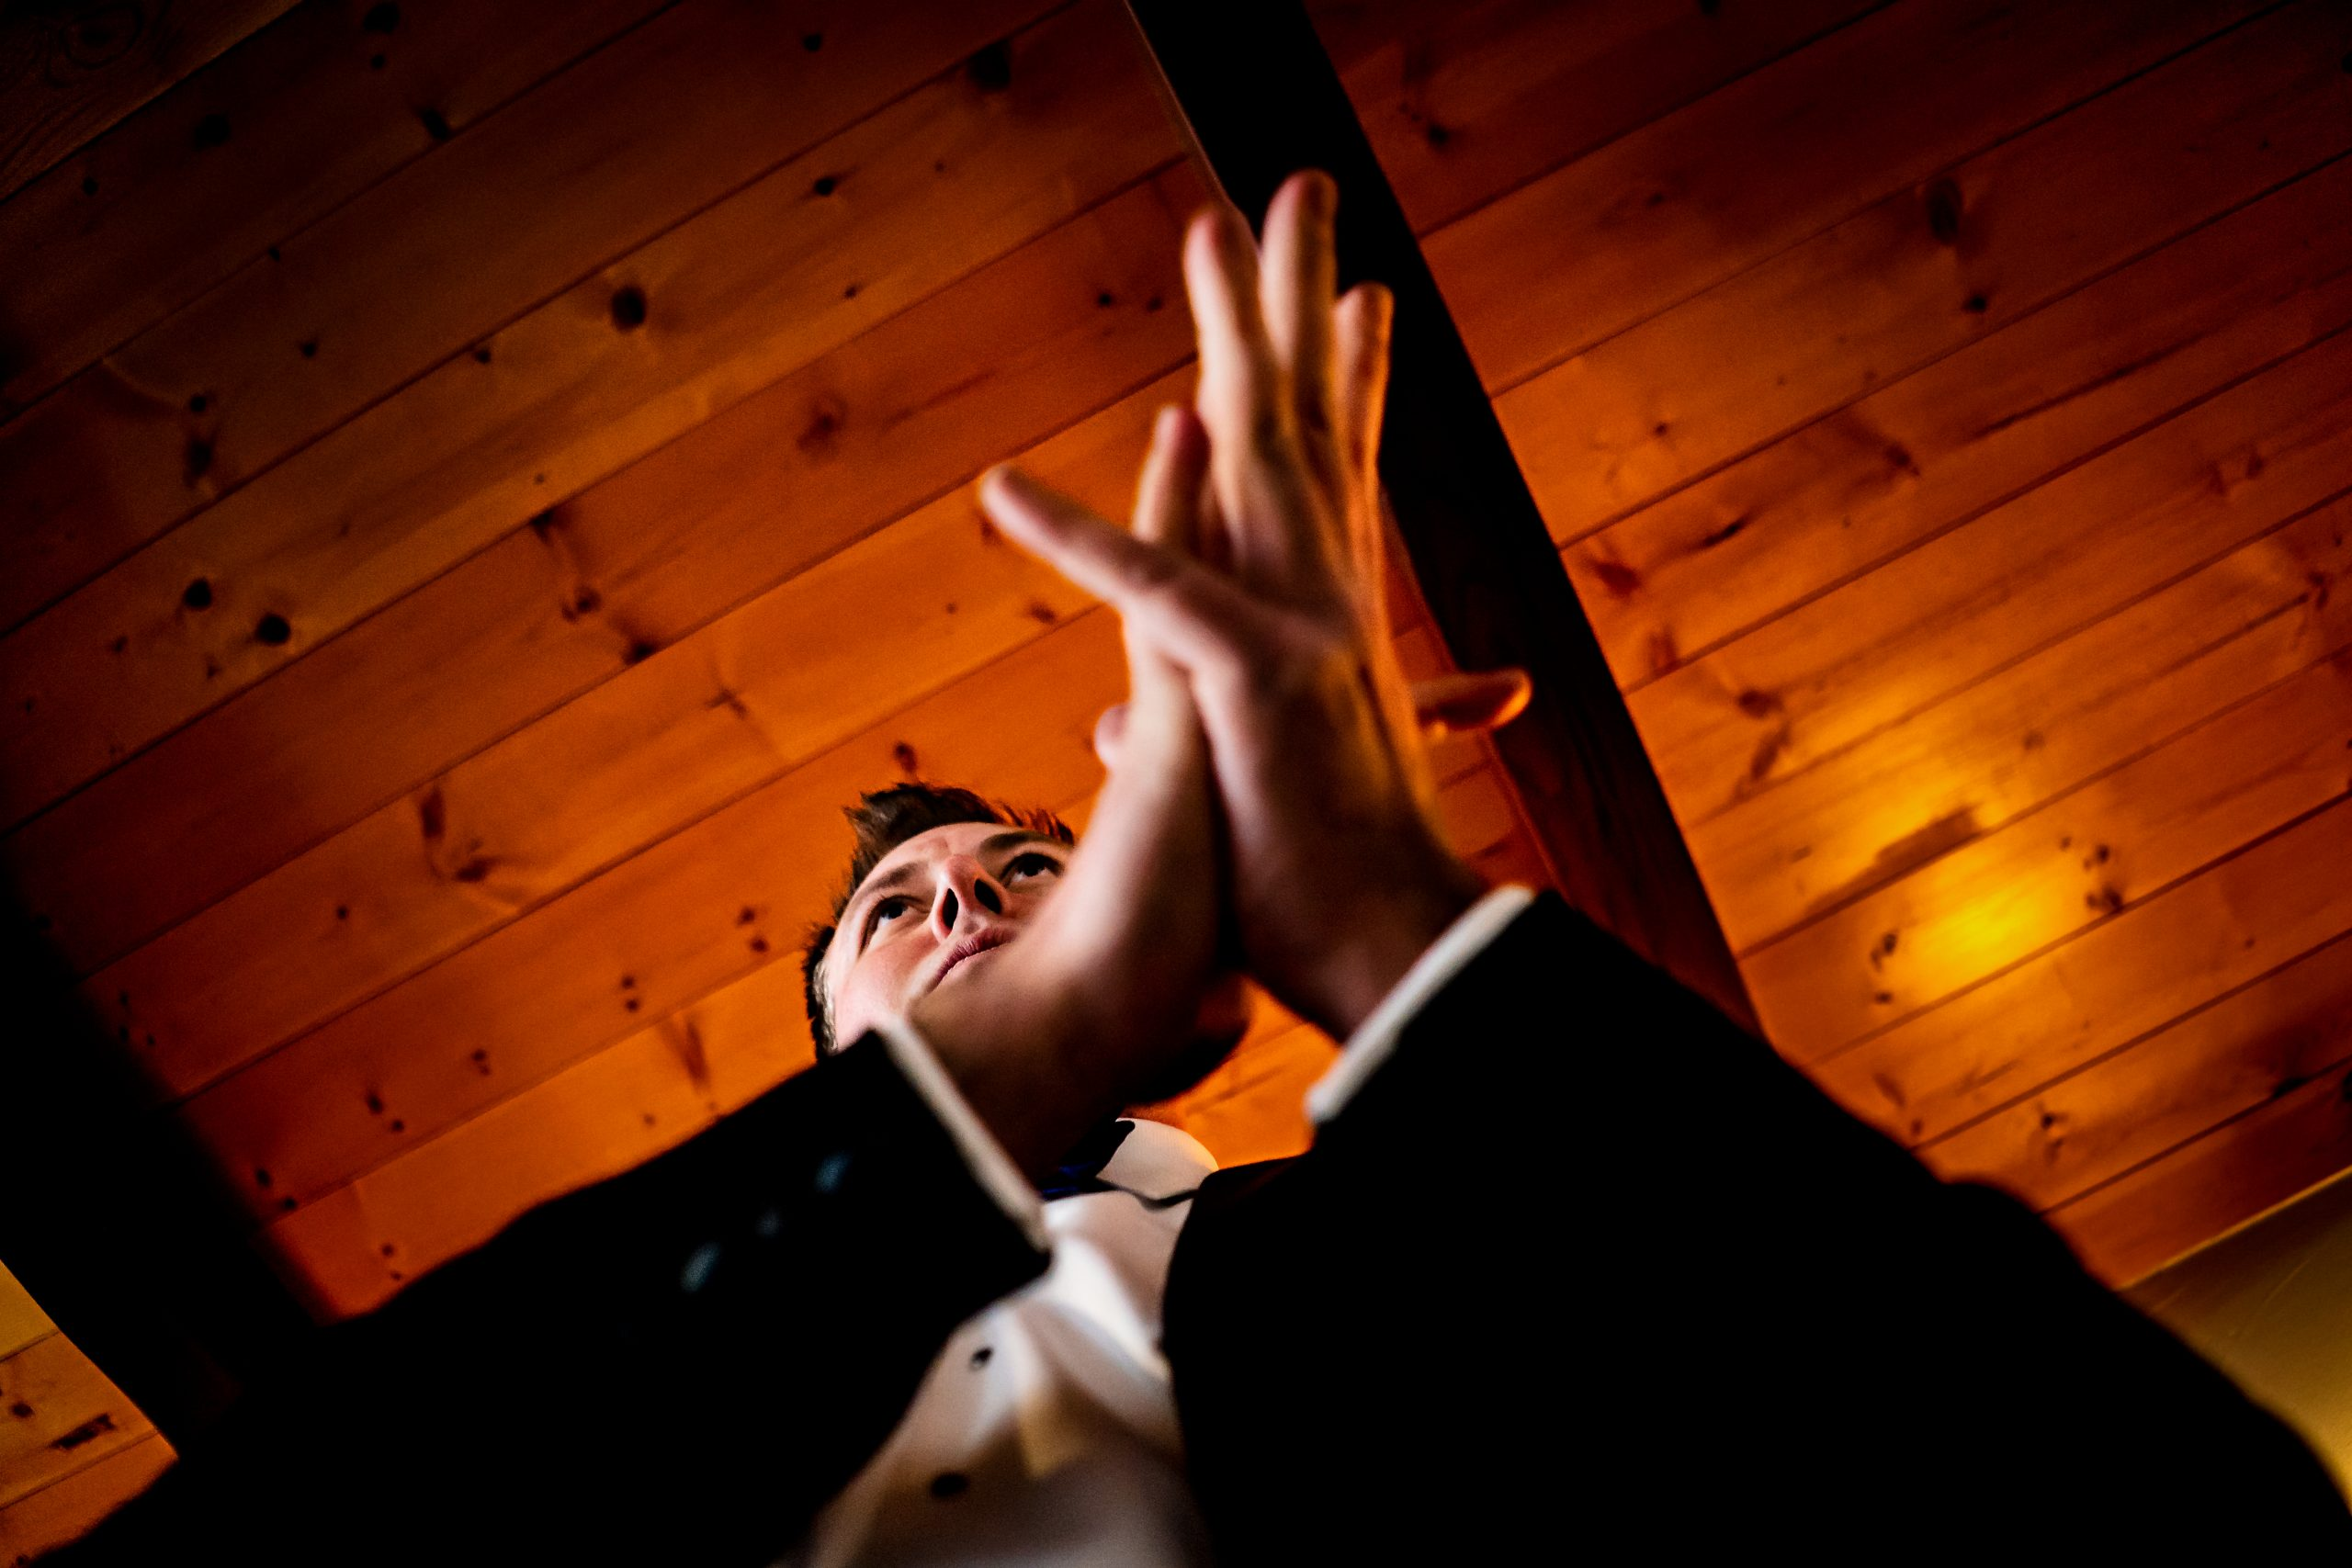 Groom is seen from below anticipating the wedding ceremony.